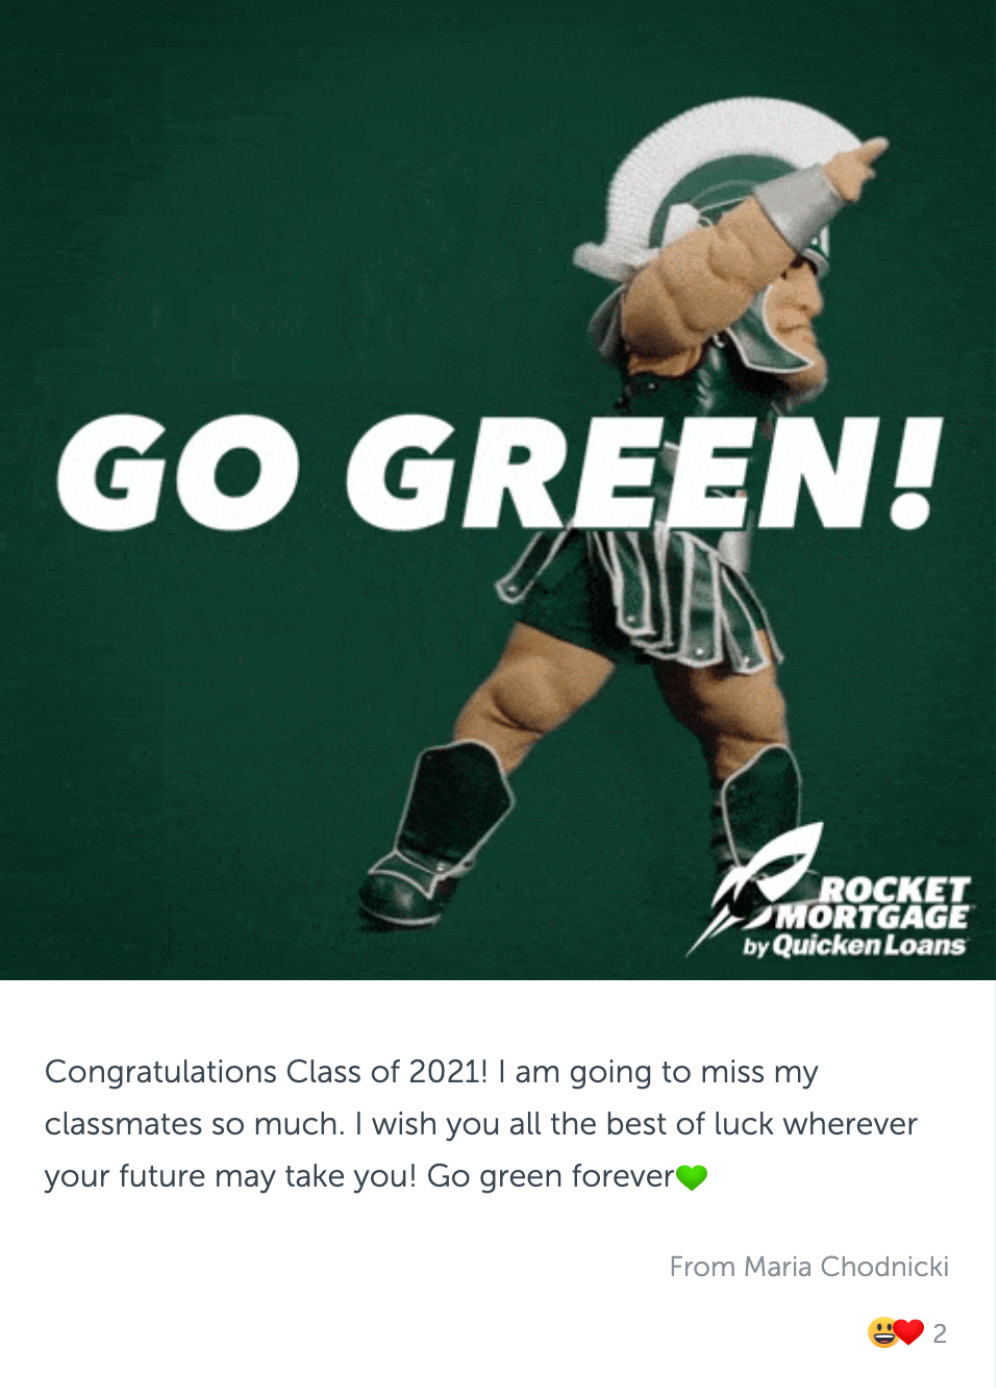 """Post with a gif of Sparty with text """"GO GREEN!"""", and congratulatory message"""